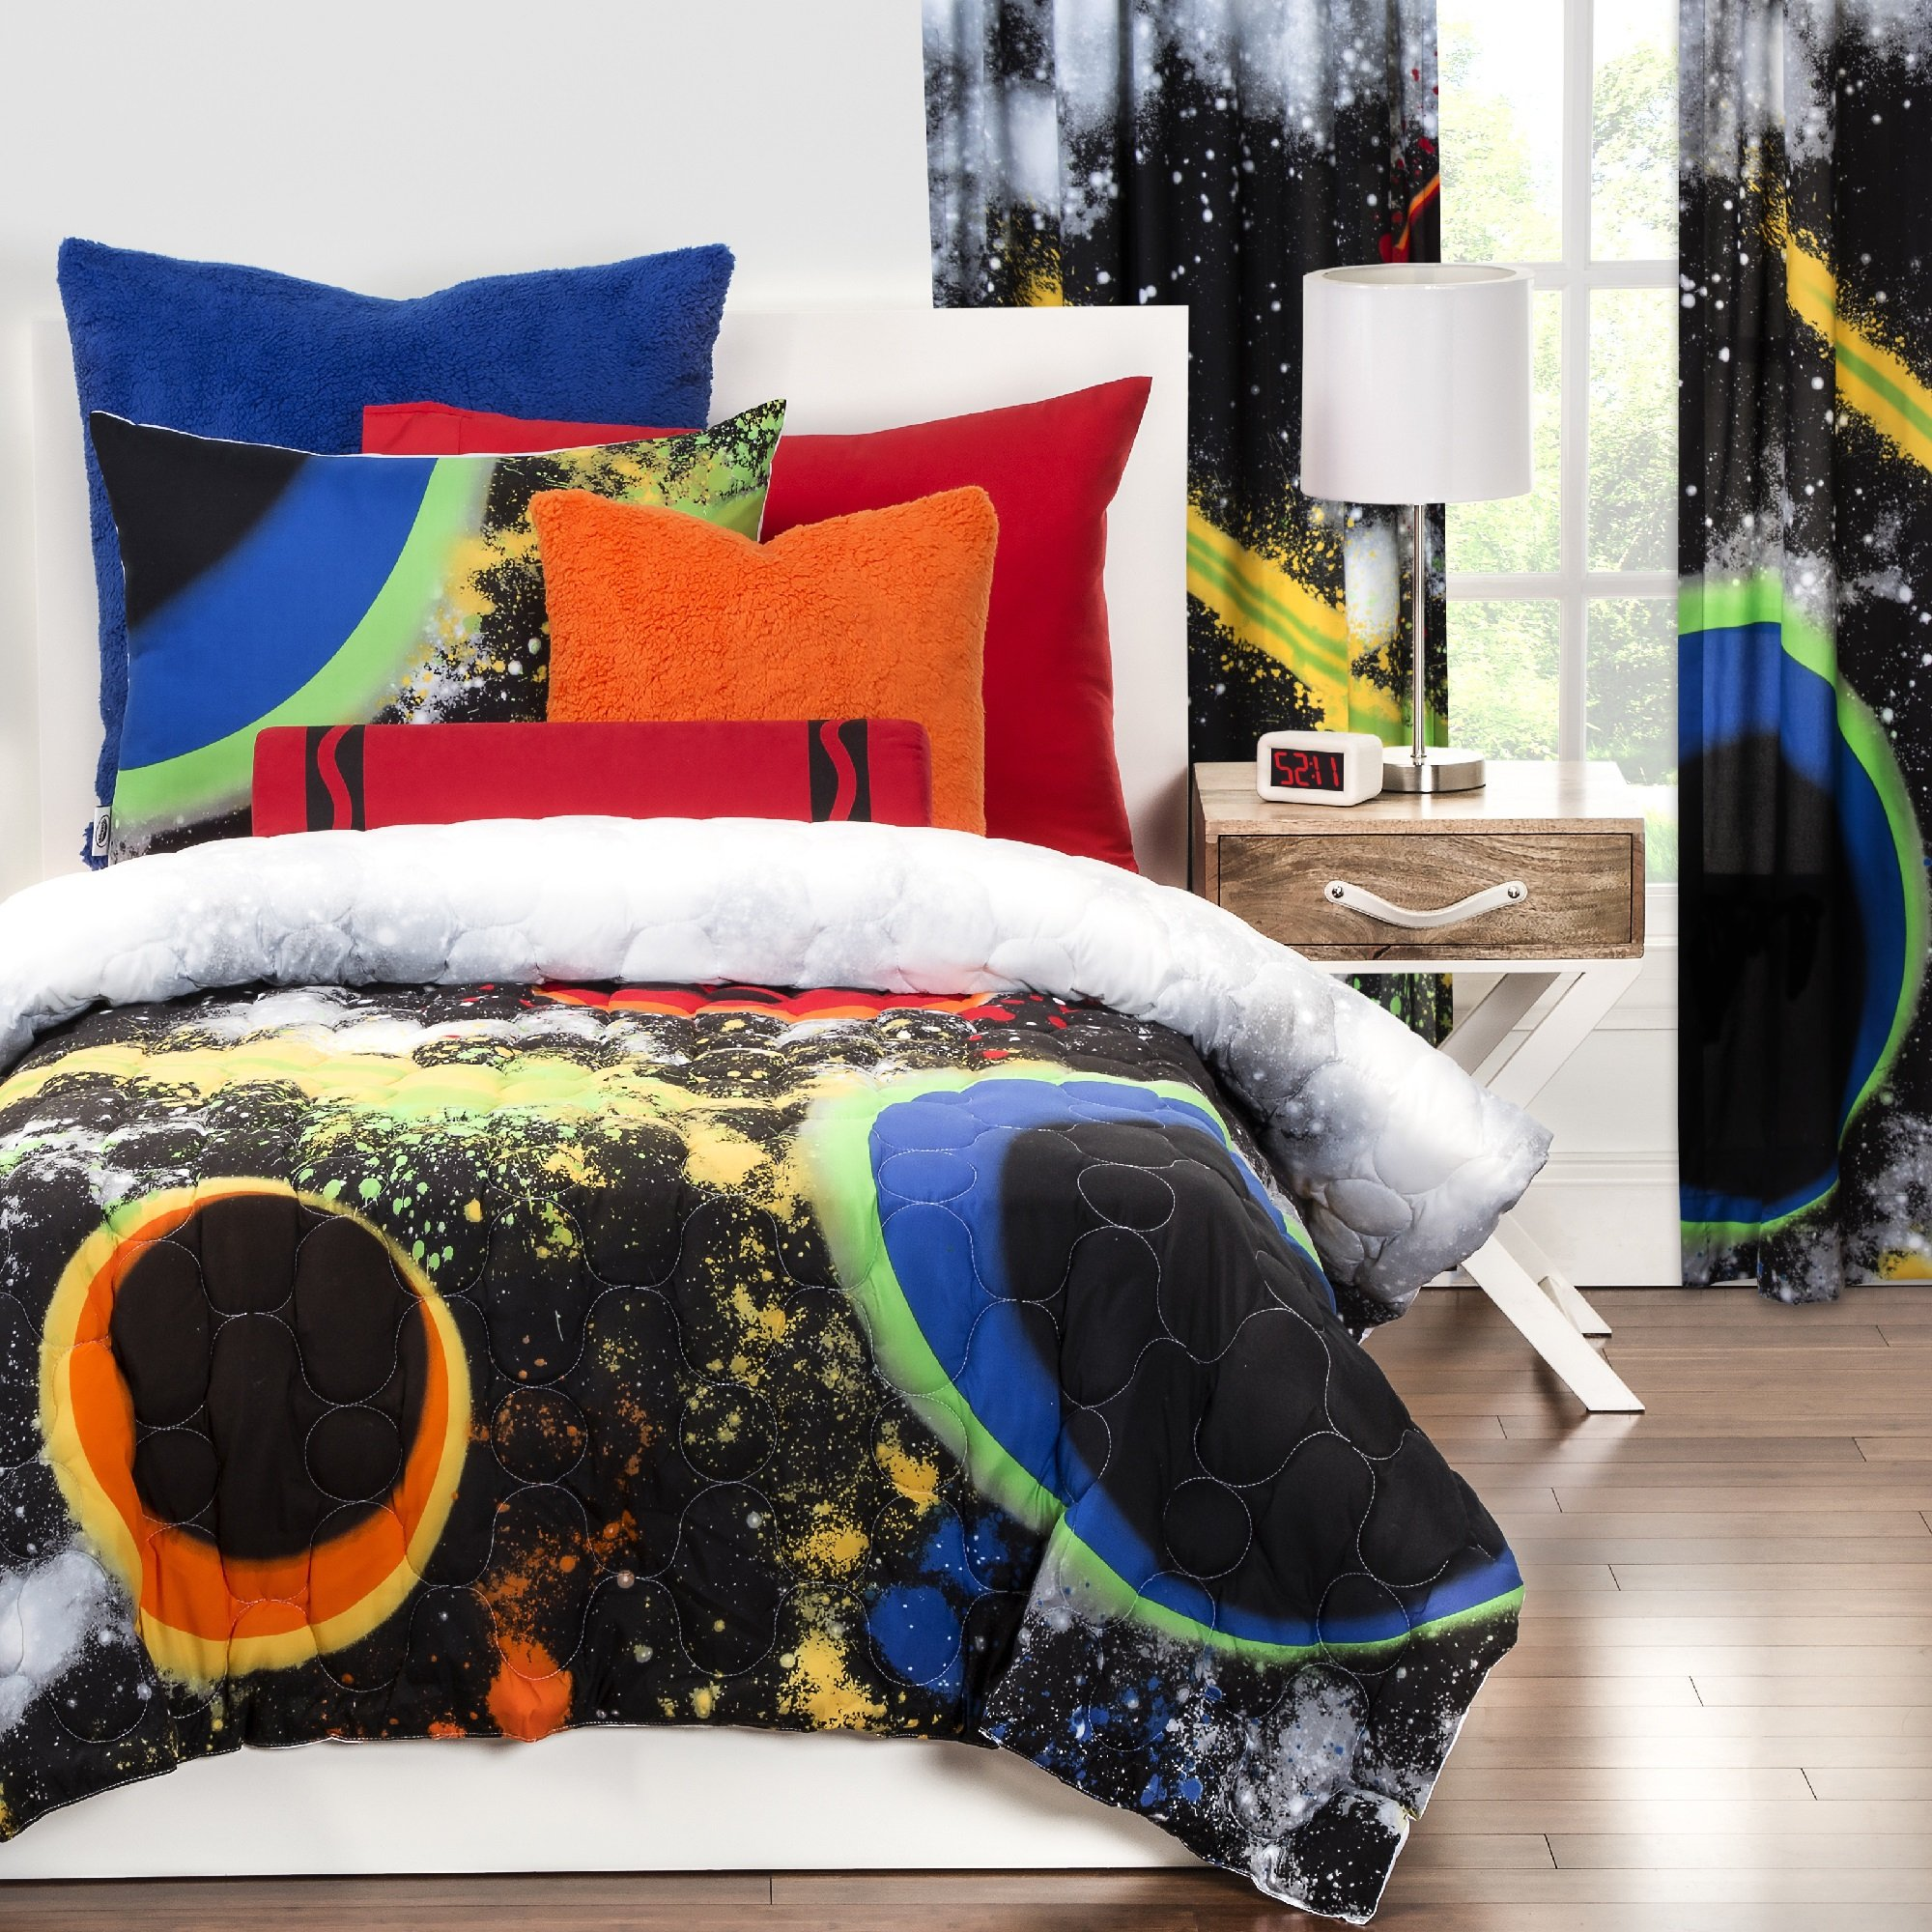 3 Piece Watercolor Like Outerspace Patterned Comforter Set Full/Queen Size, Printed Vibrant Color Splash Milky Way Geometric Rings Bedding, Stylish Modern Design, Classic Kids Bedroom, Black, Yellow